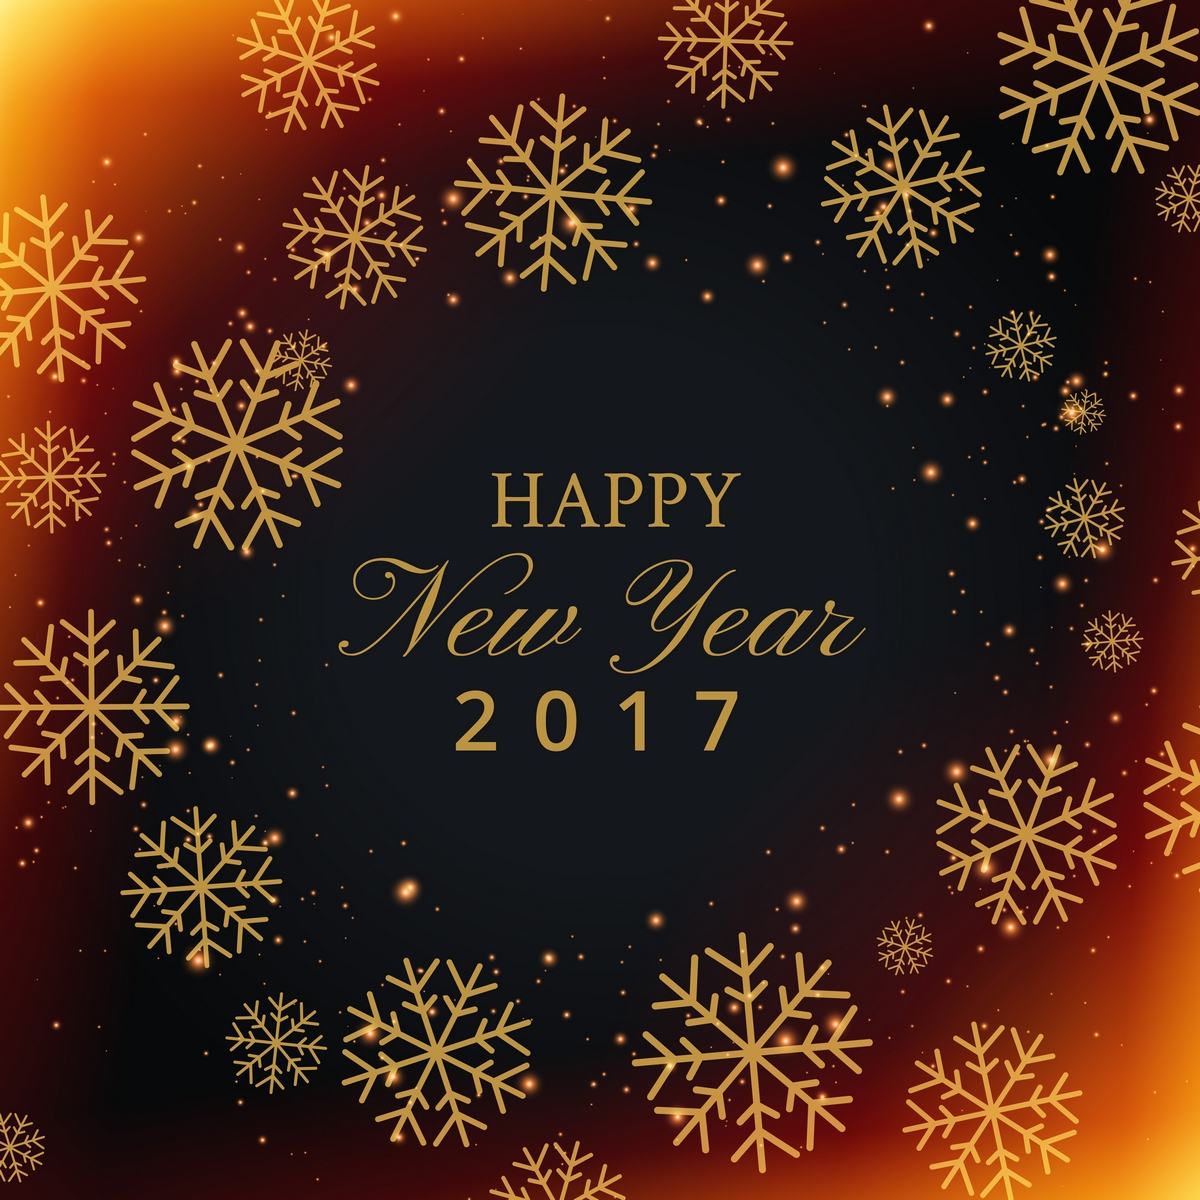 Hd Images Good Happy New Year 1143980 Hd Wallpaper